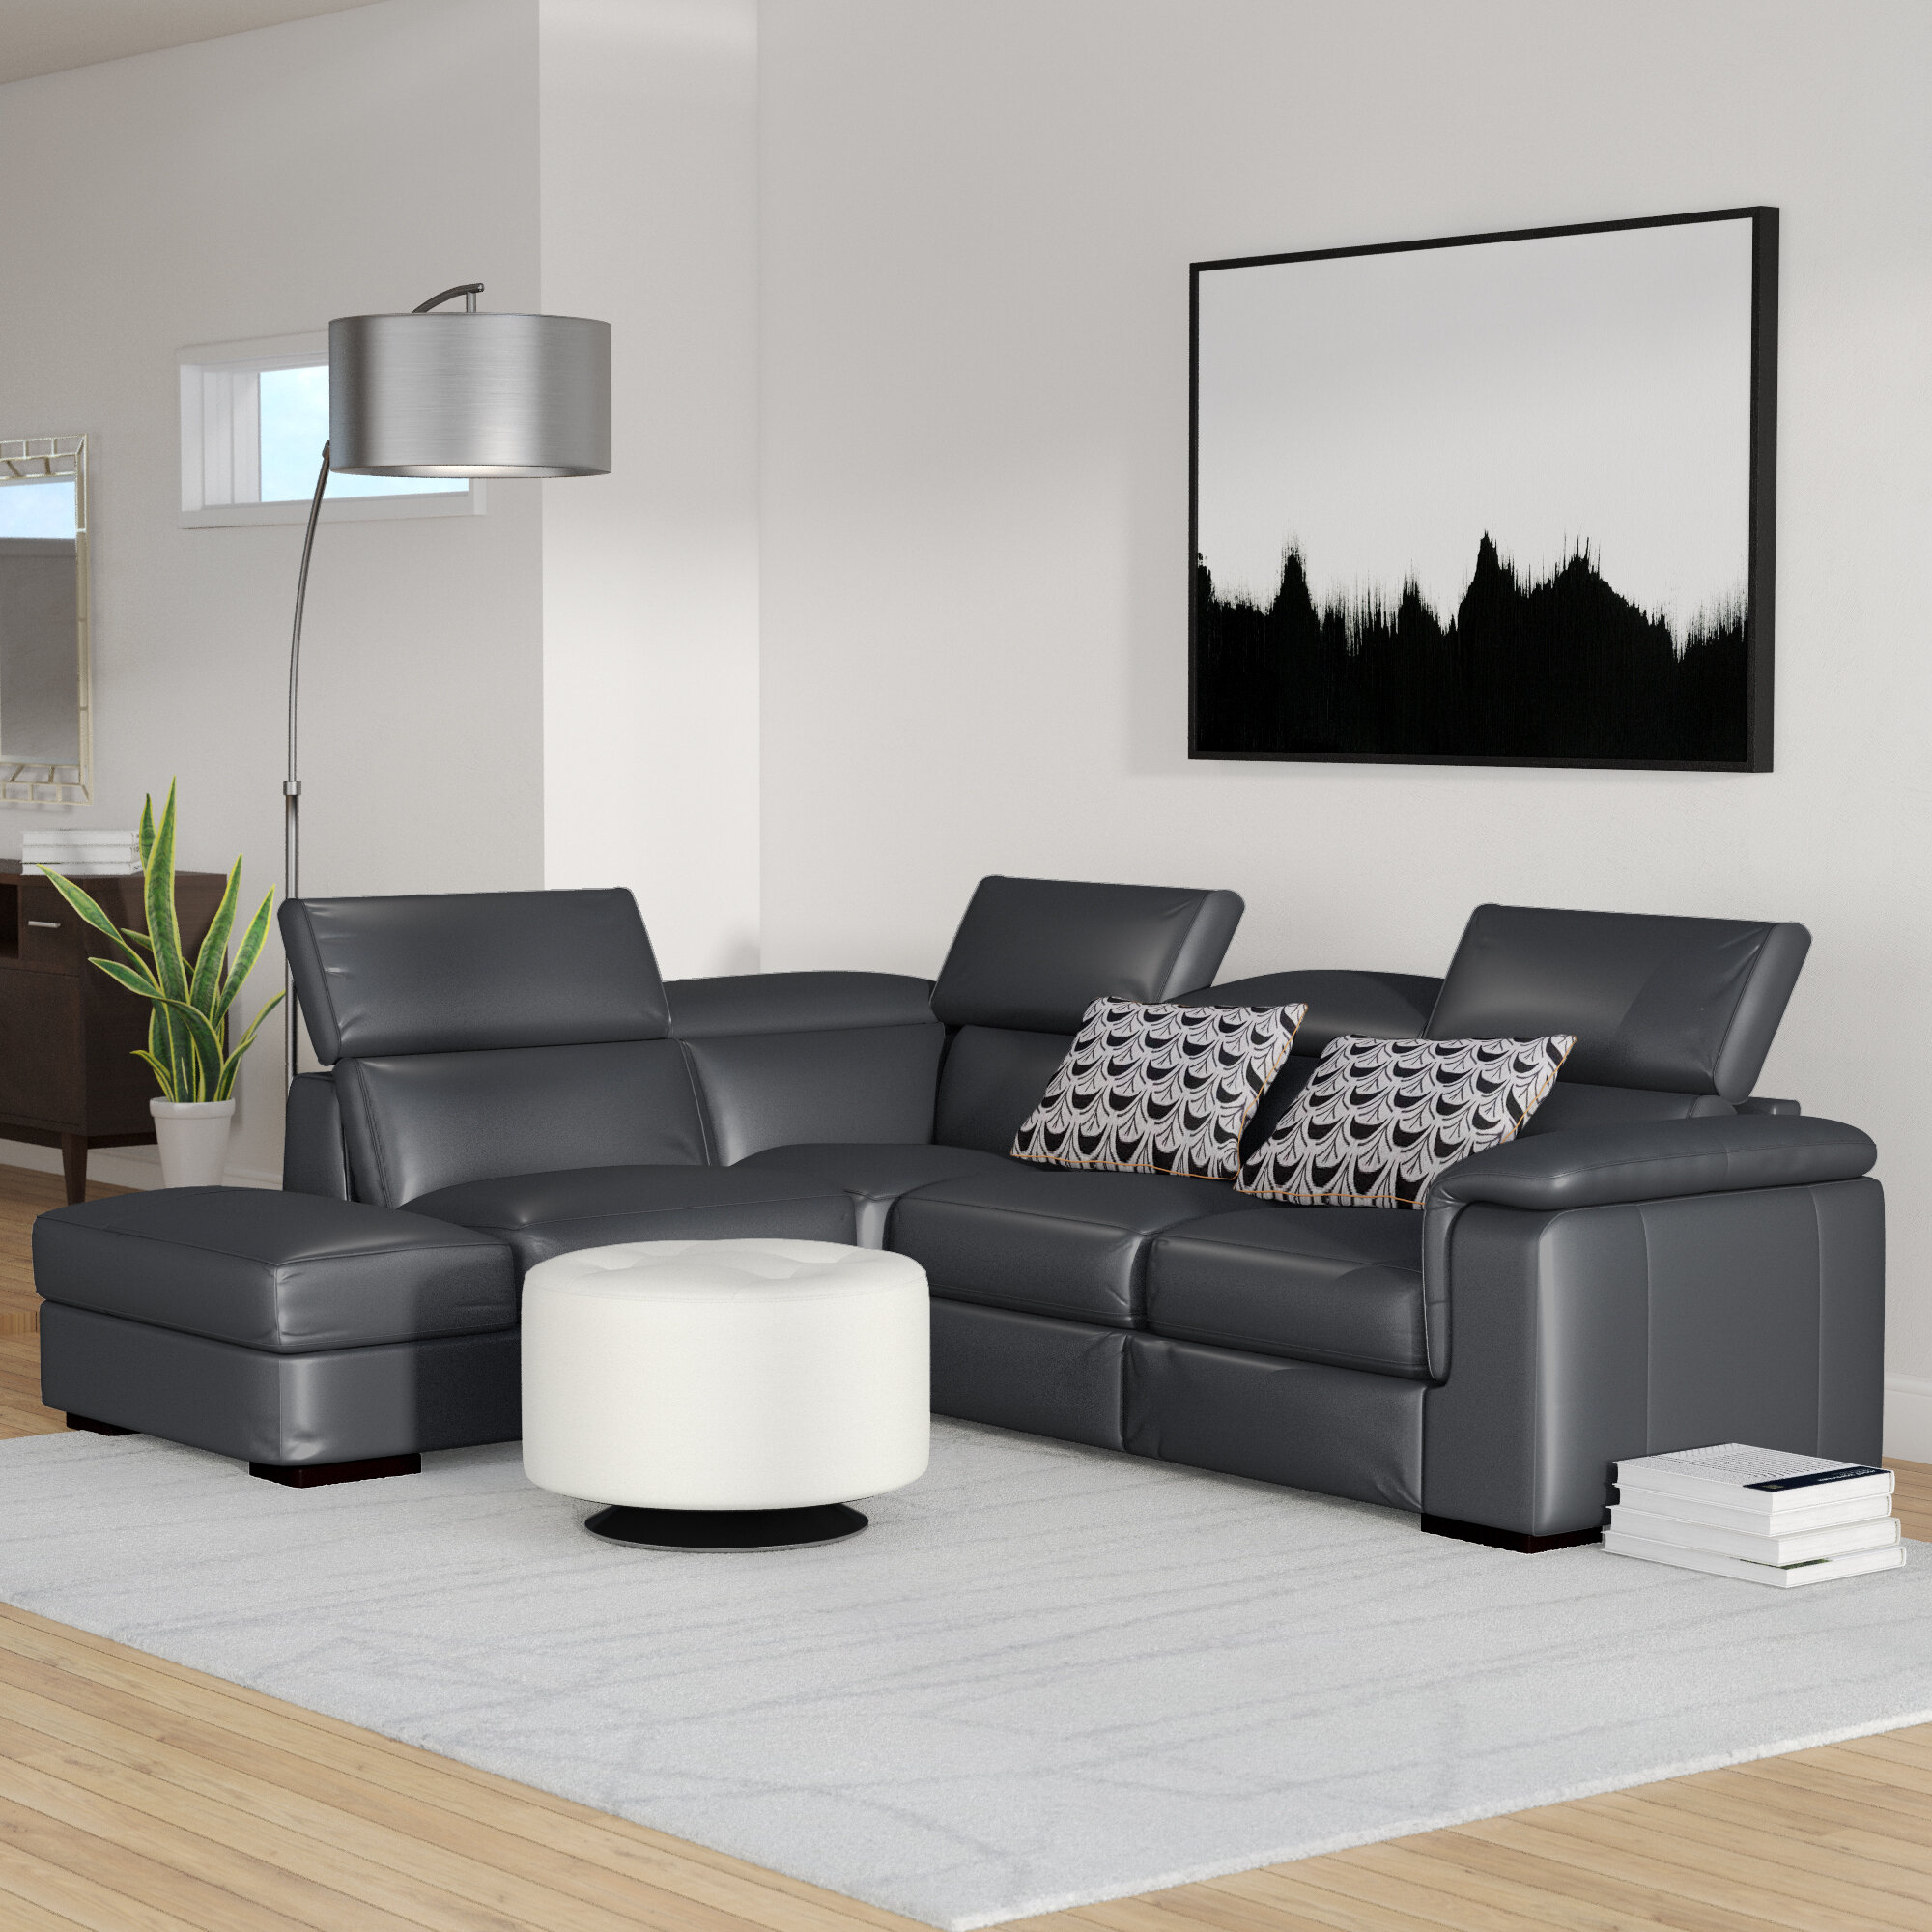 match reclining products power leather wedge with furniture sectional contemporary by ashley sofa design